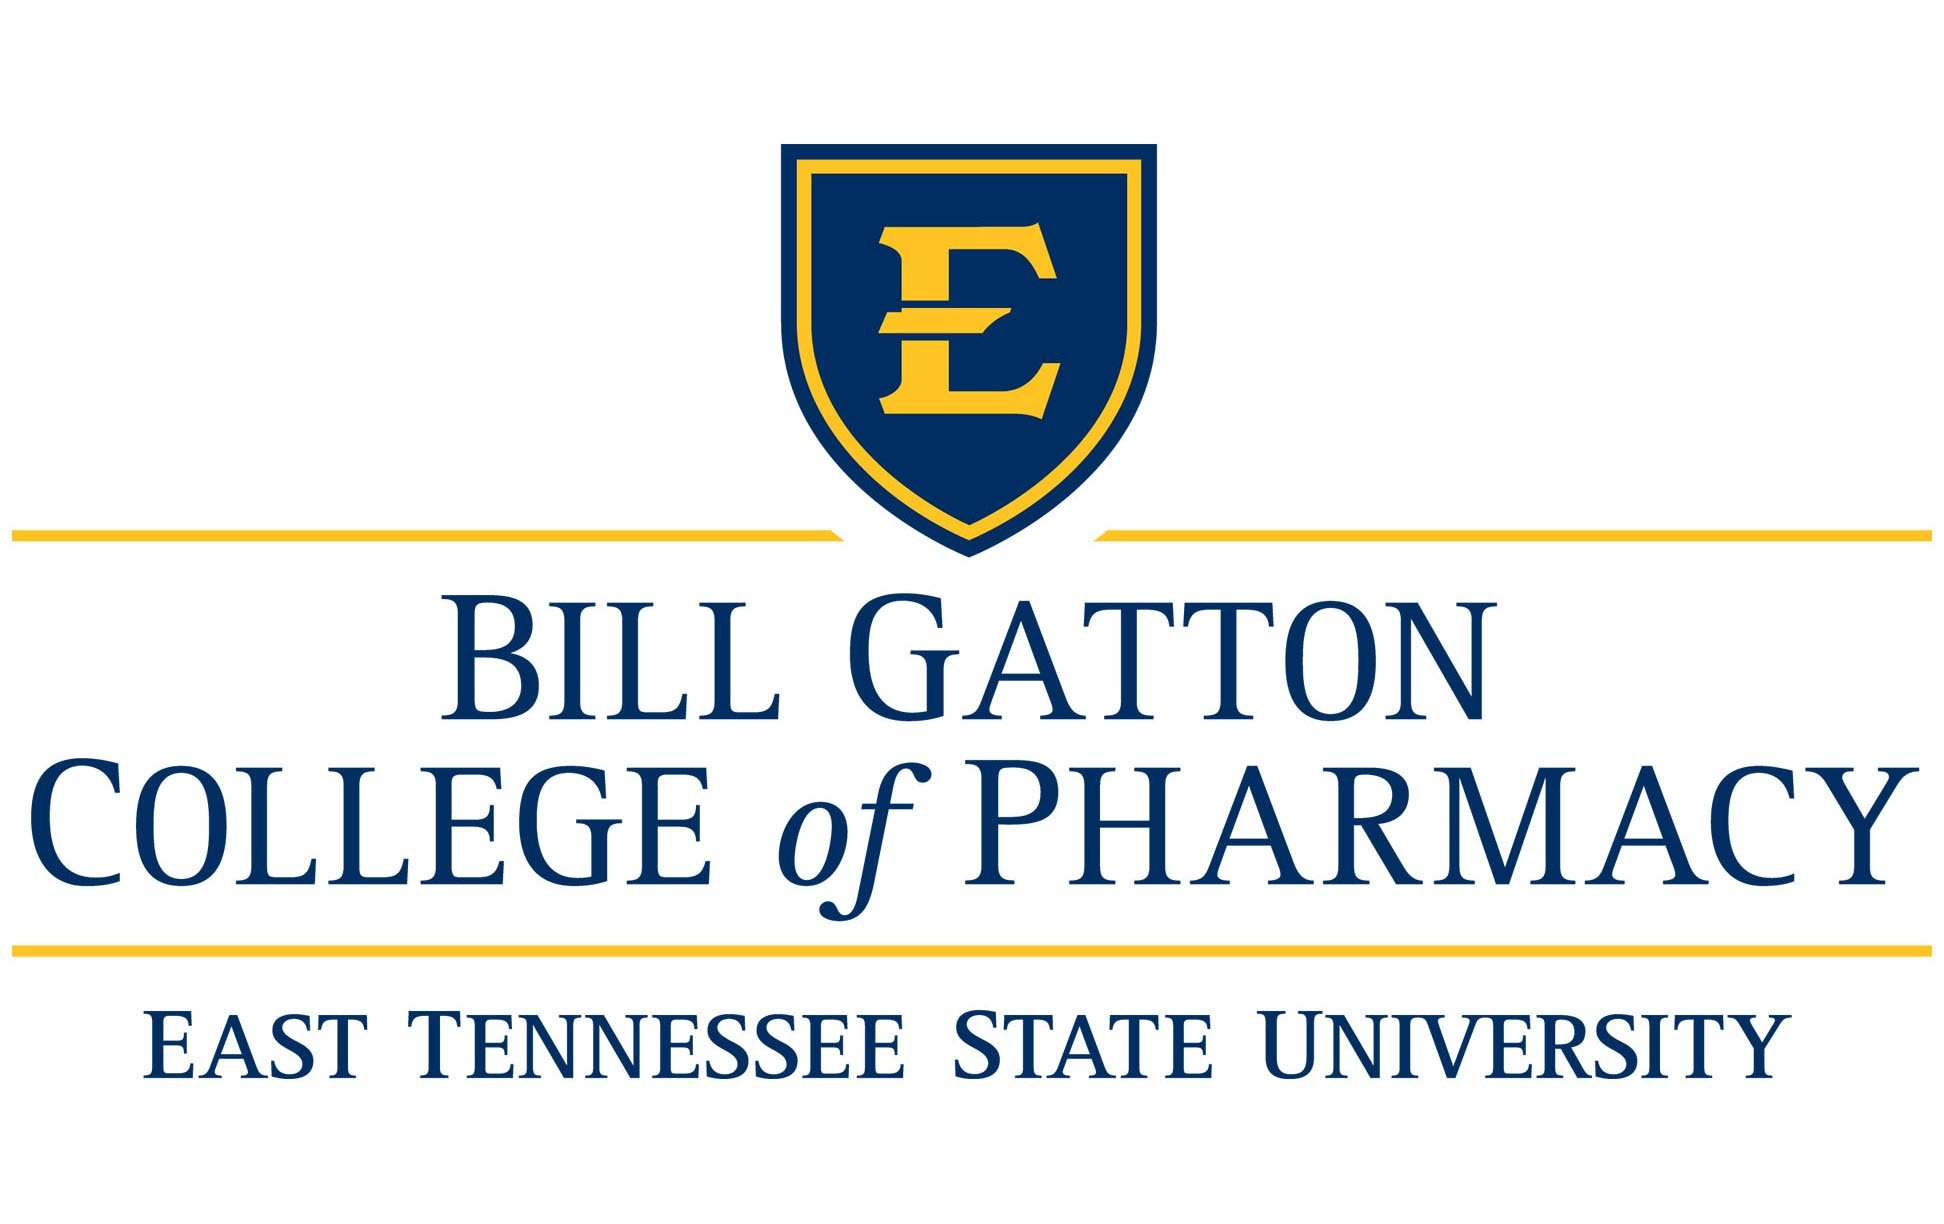 Bill Gatton College of Pharmacy ETSU